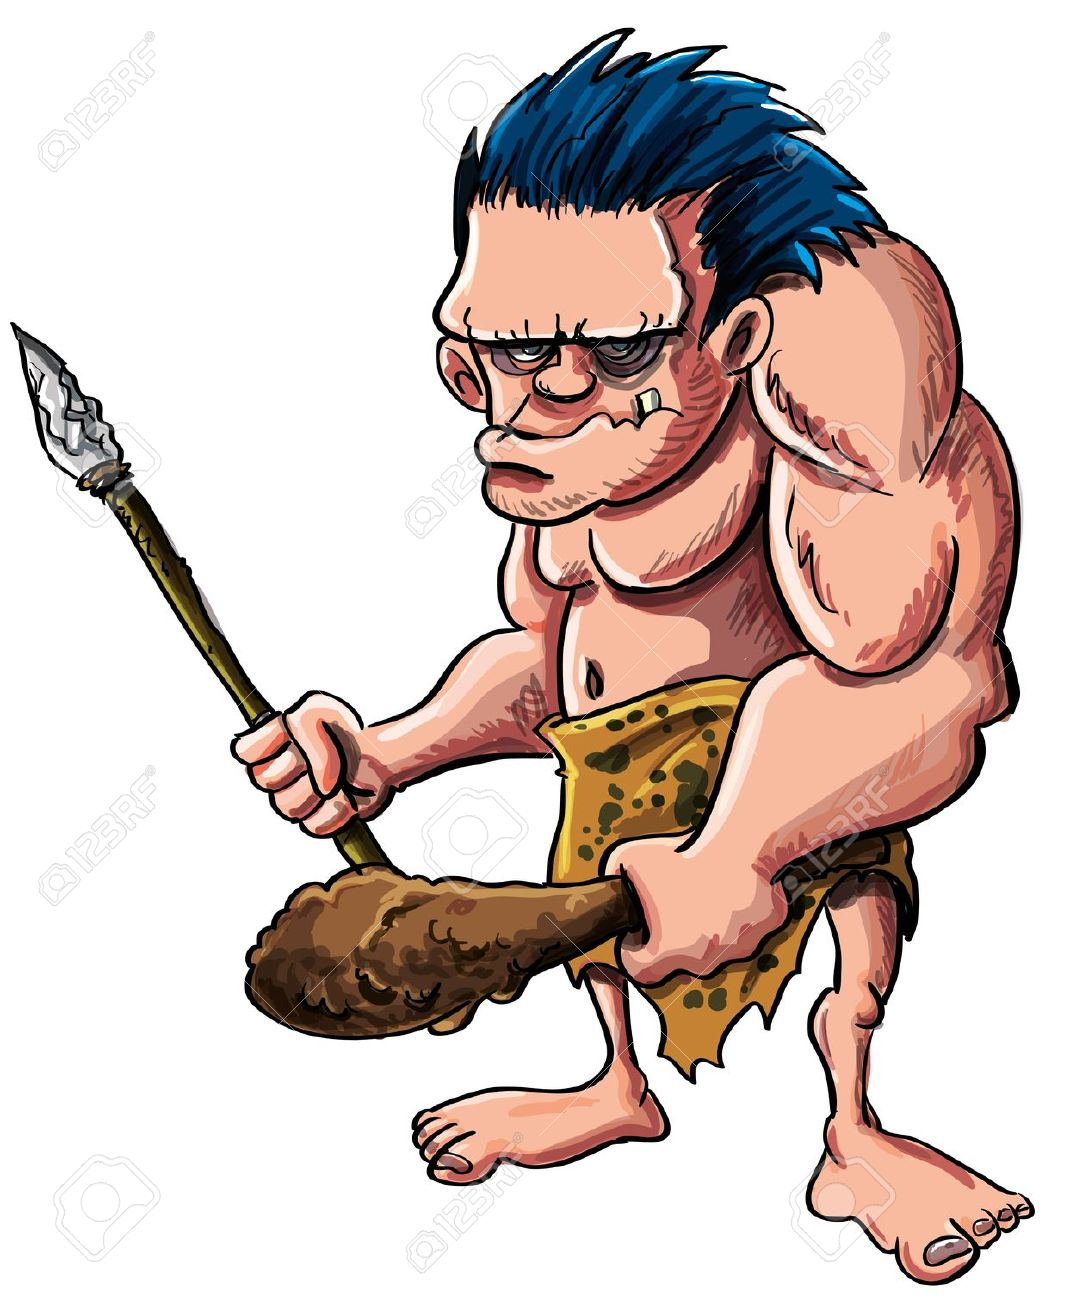 1070x1300 Caveman Clipart Muscular Free Collection Download And Share